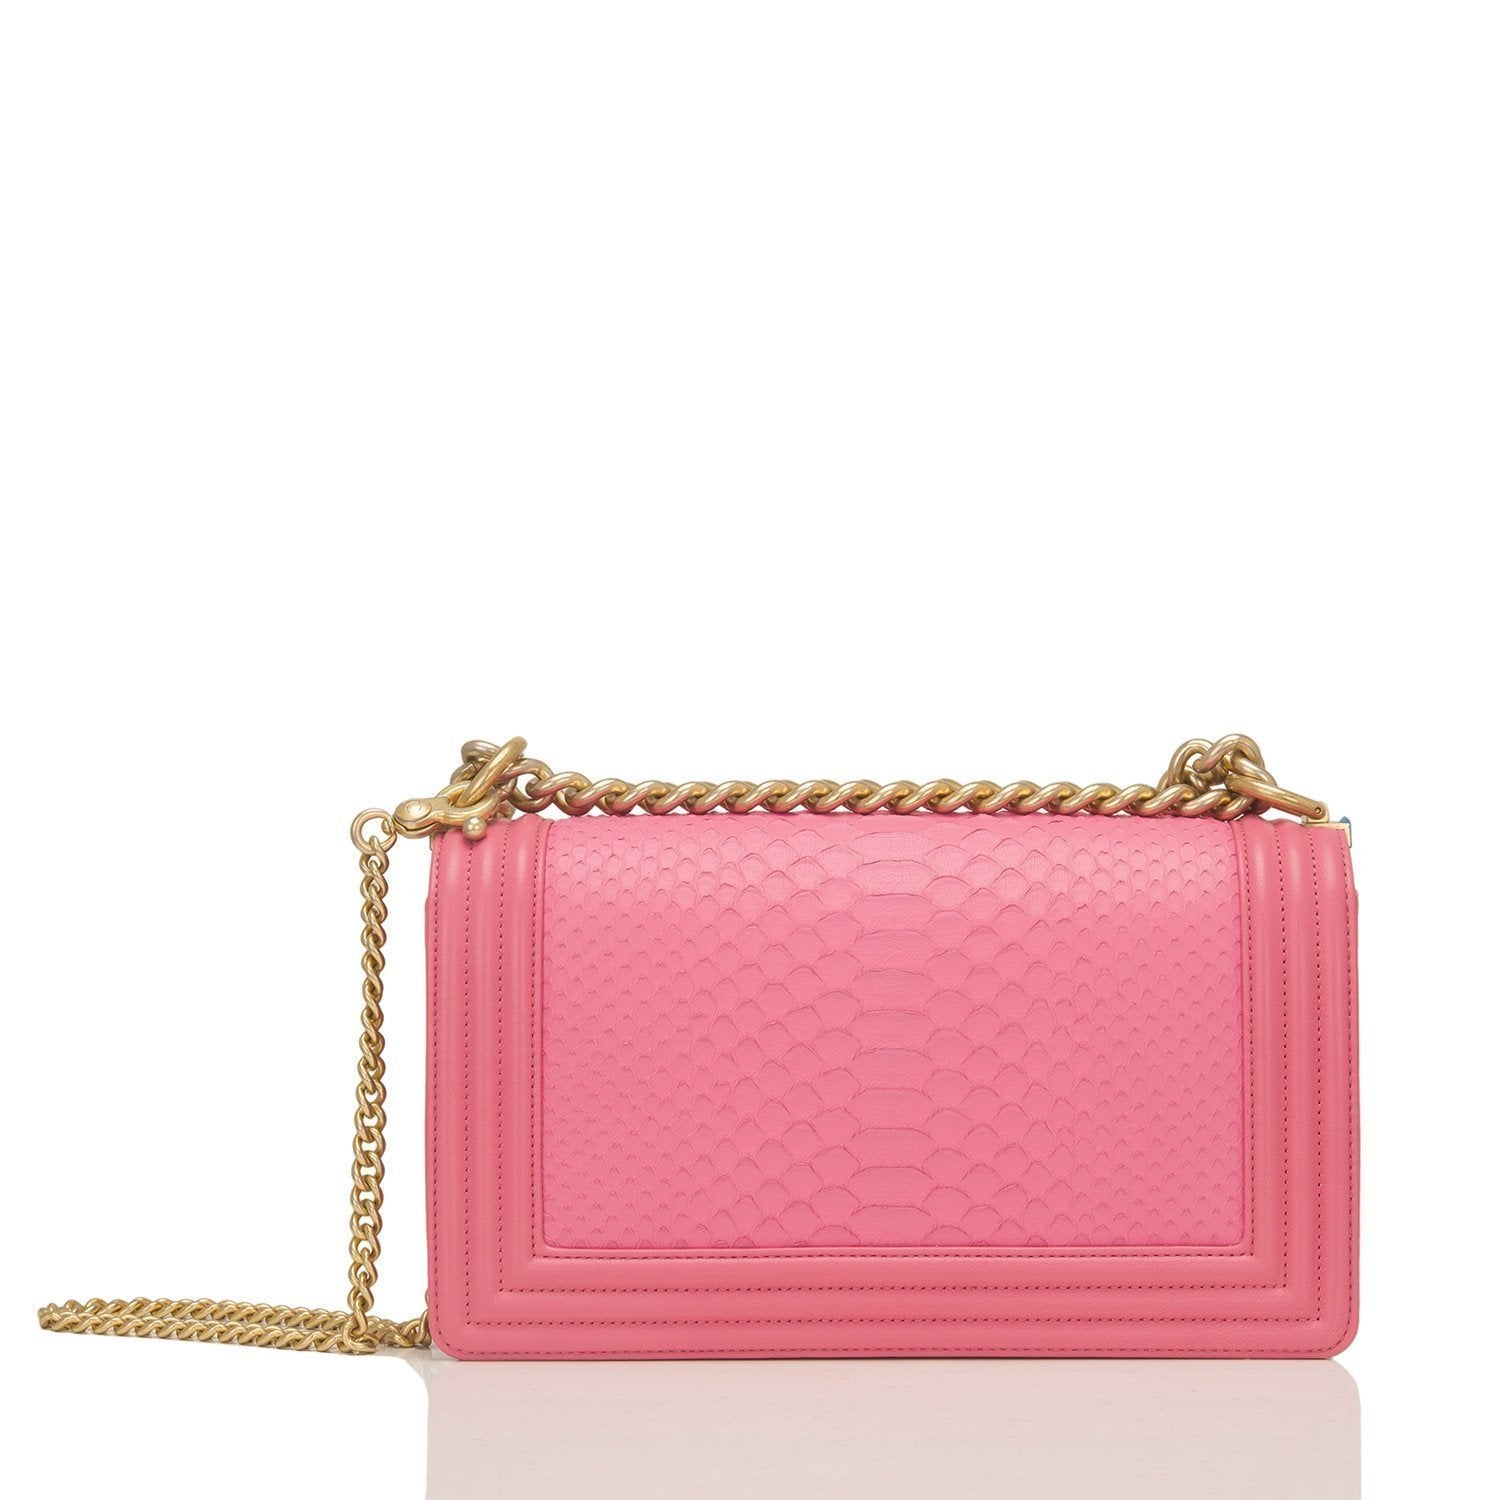 Chanel Pink Python Medium Boy Bag Handbags